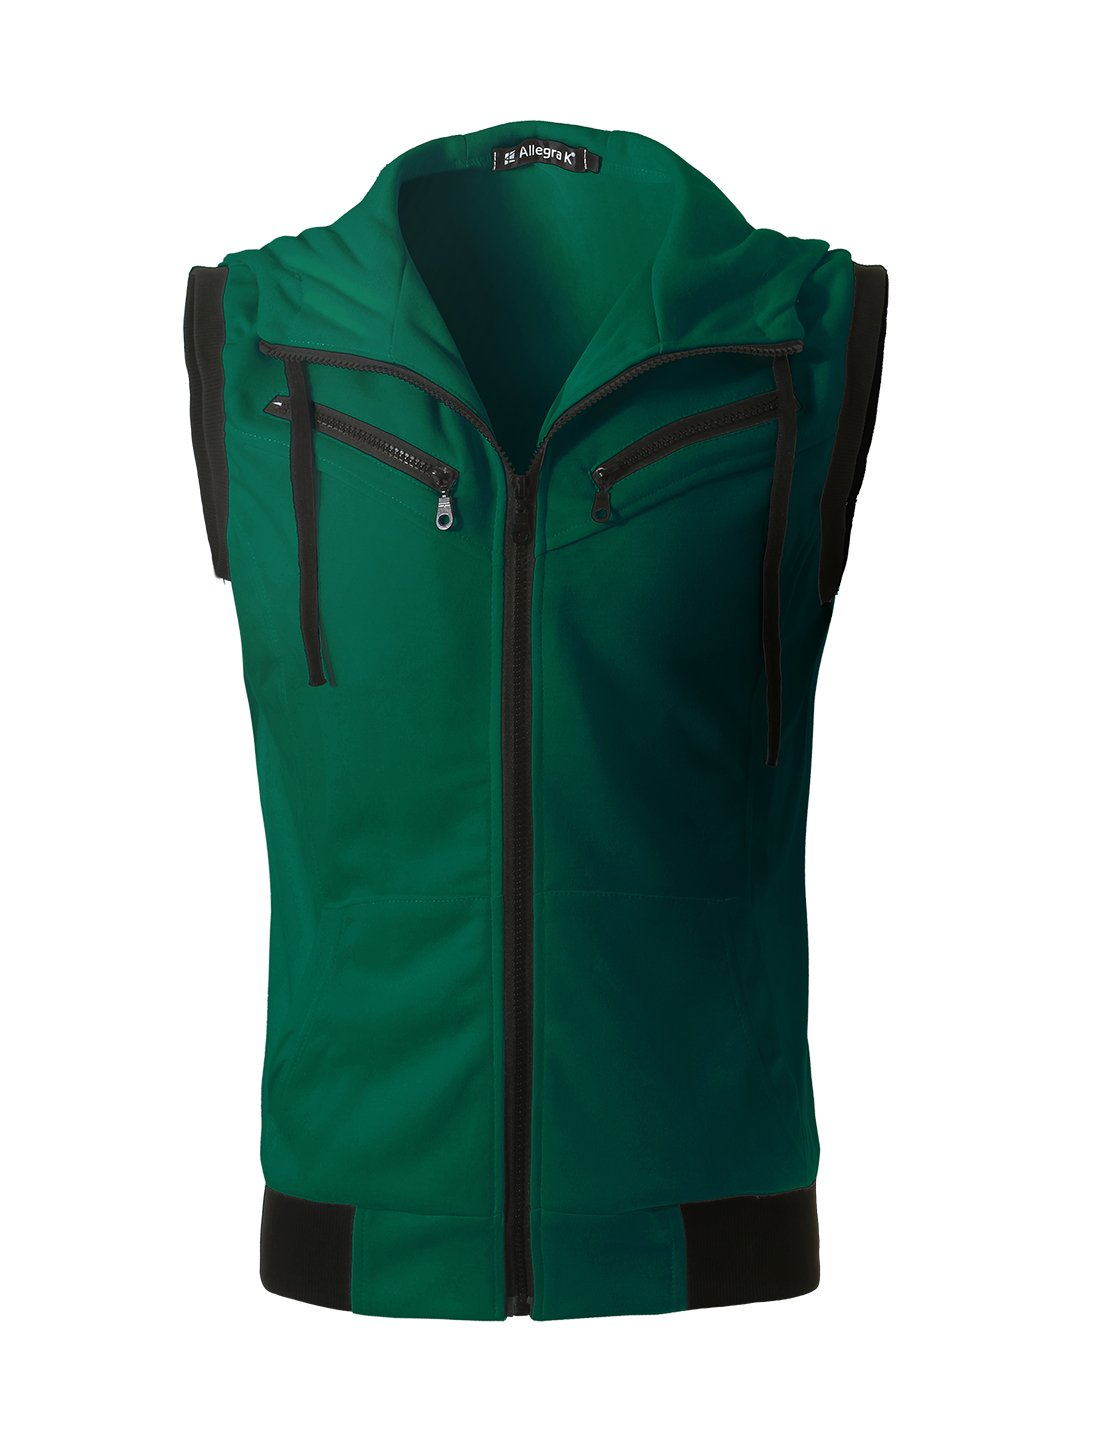 uxcell Men's Drawstring Hooded Zip Closure Sleeveless Vest Jacket Waistcoat w Pockets Green M (US 40) by uxcell